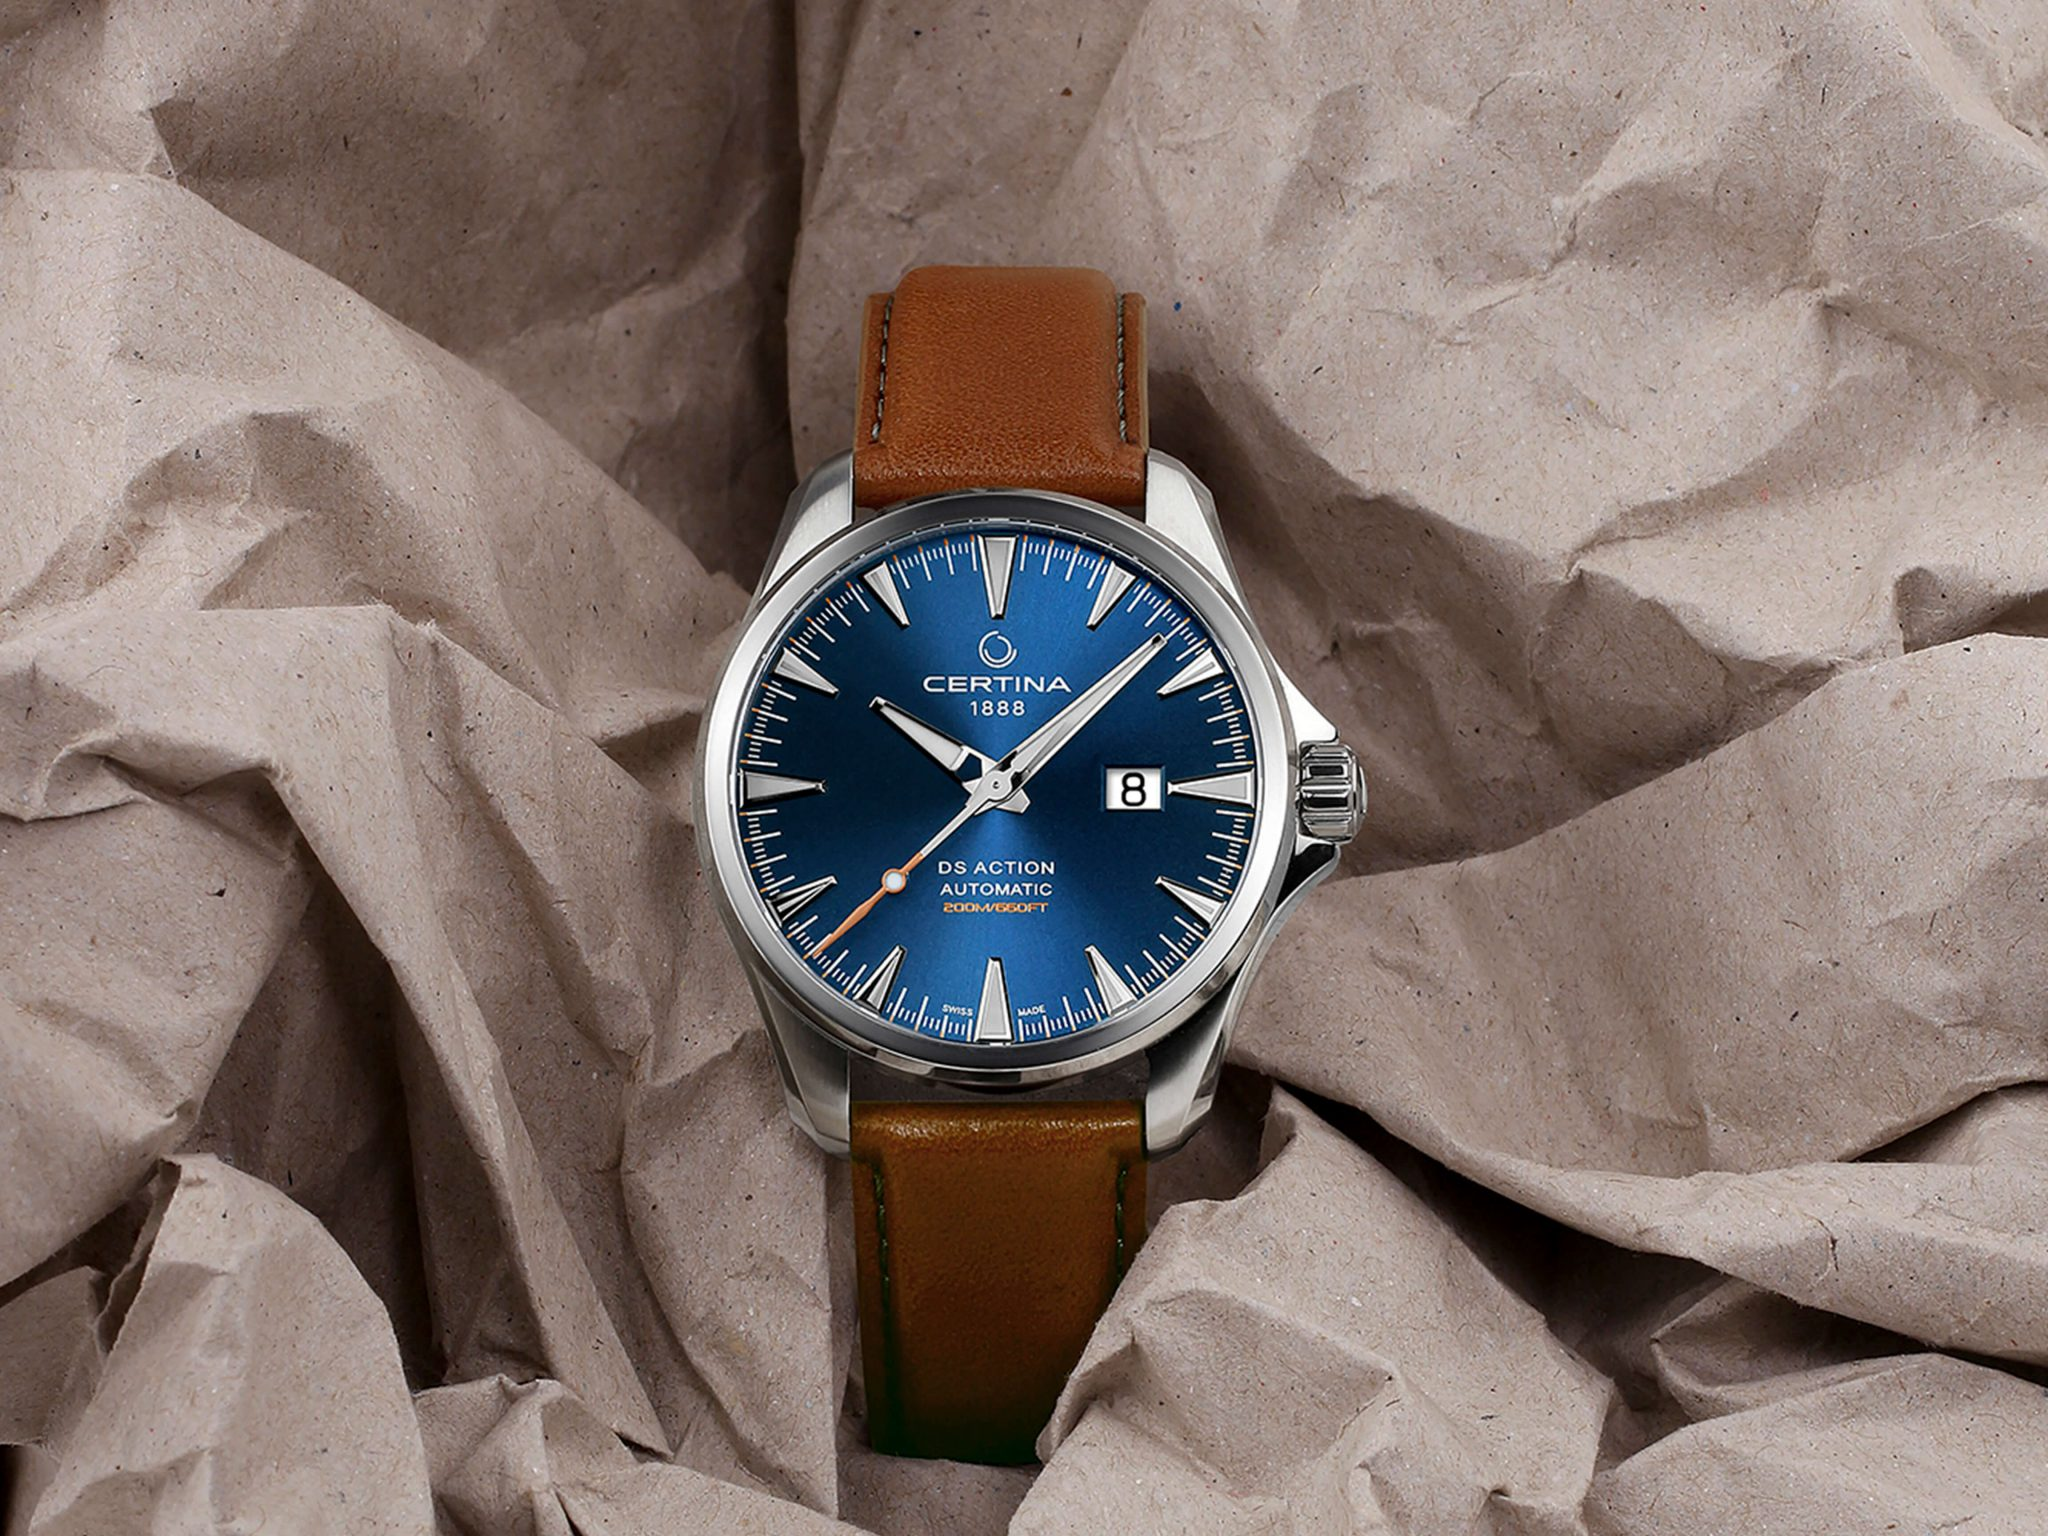 Certina dS ActiIon Big Date Automatic